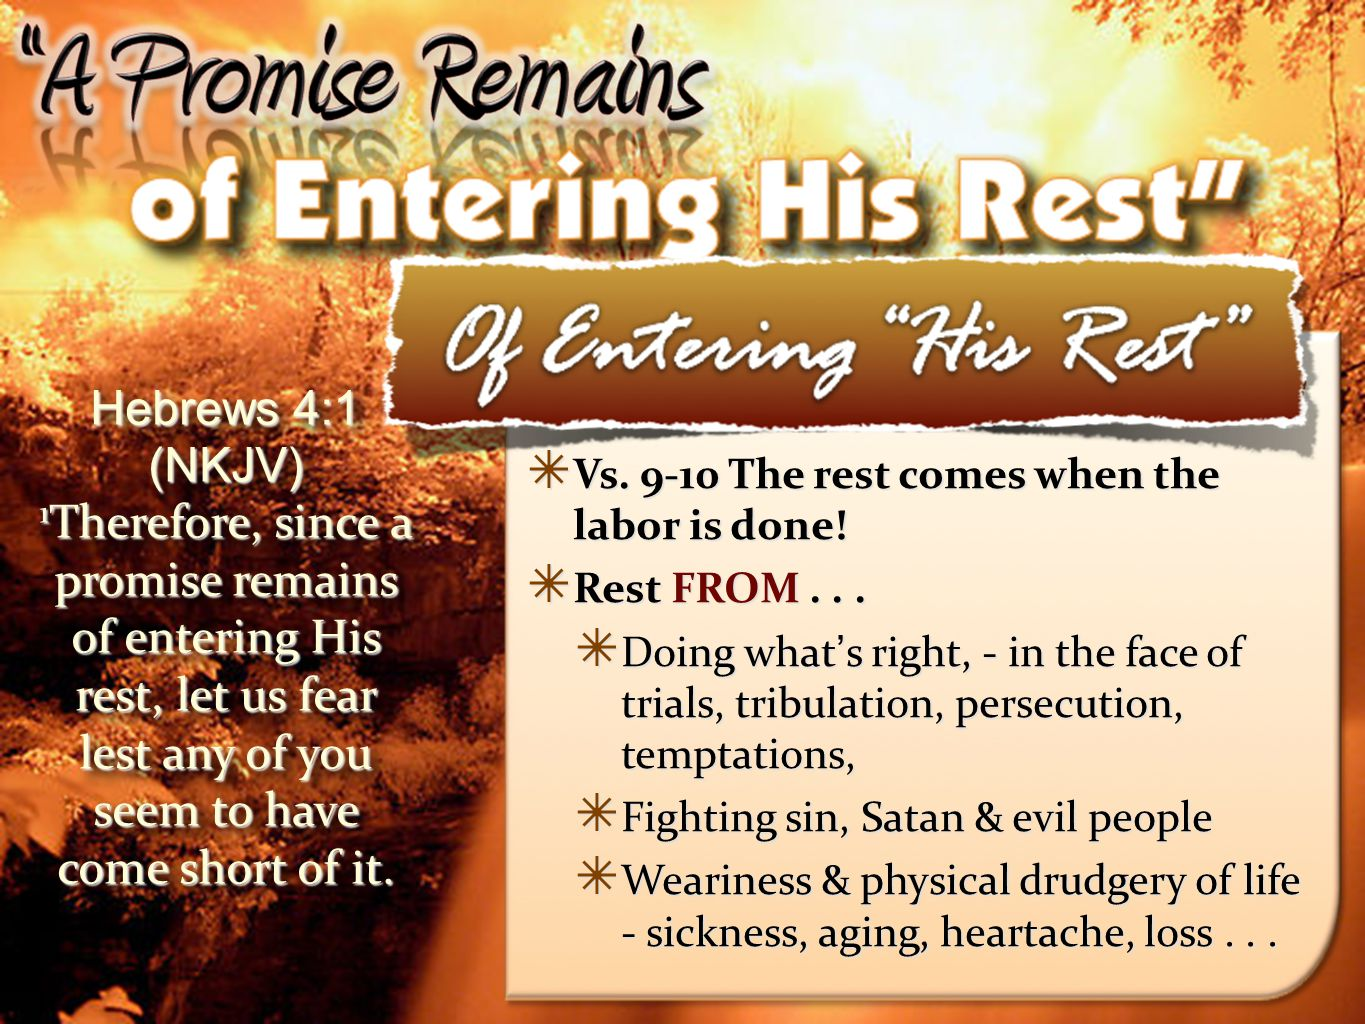 Hebrews 4:1 (NKJV) 1Therefore, since a promise remains of entering His rest, let us fear lest any of you seem to have come short of it.